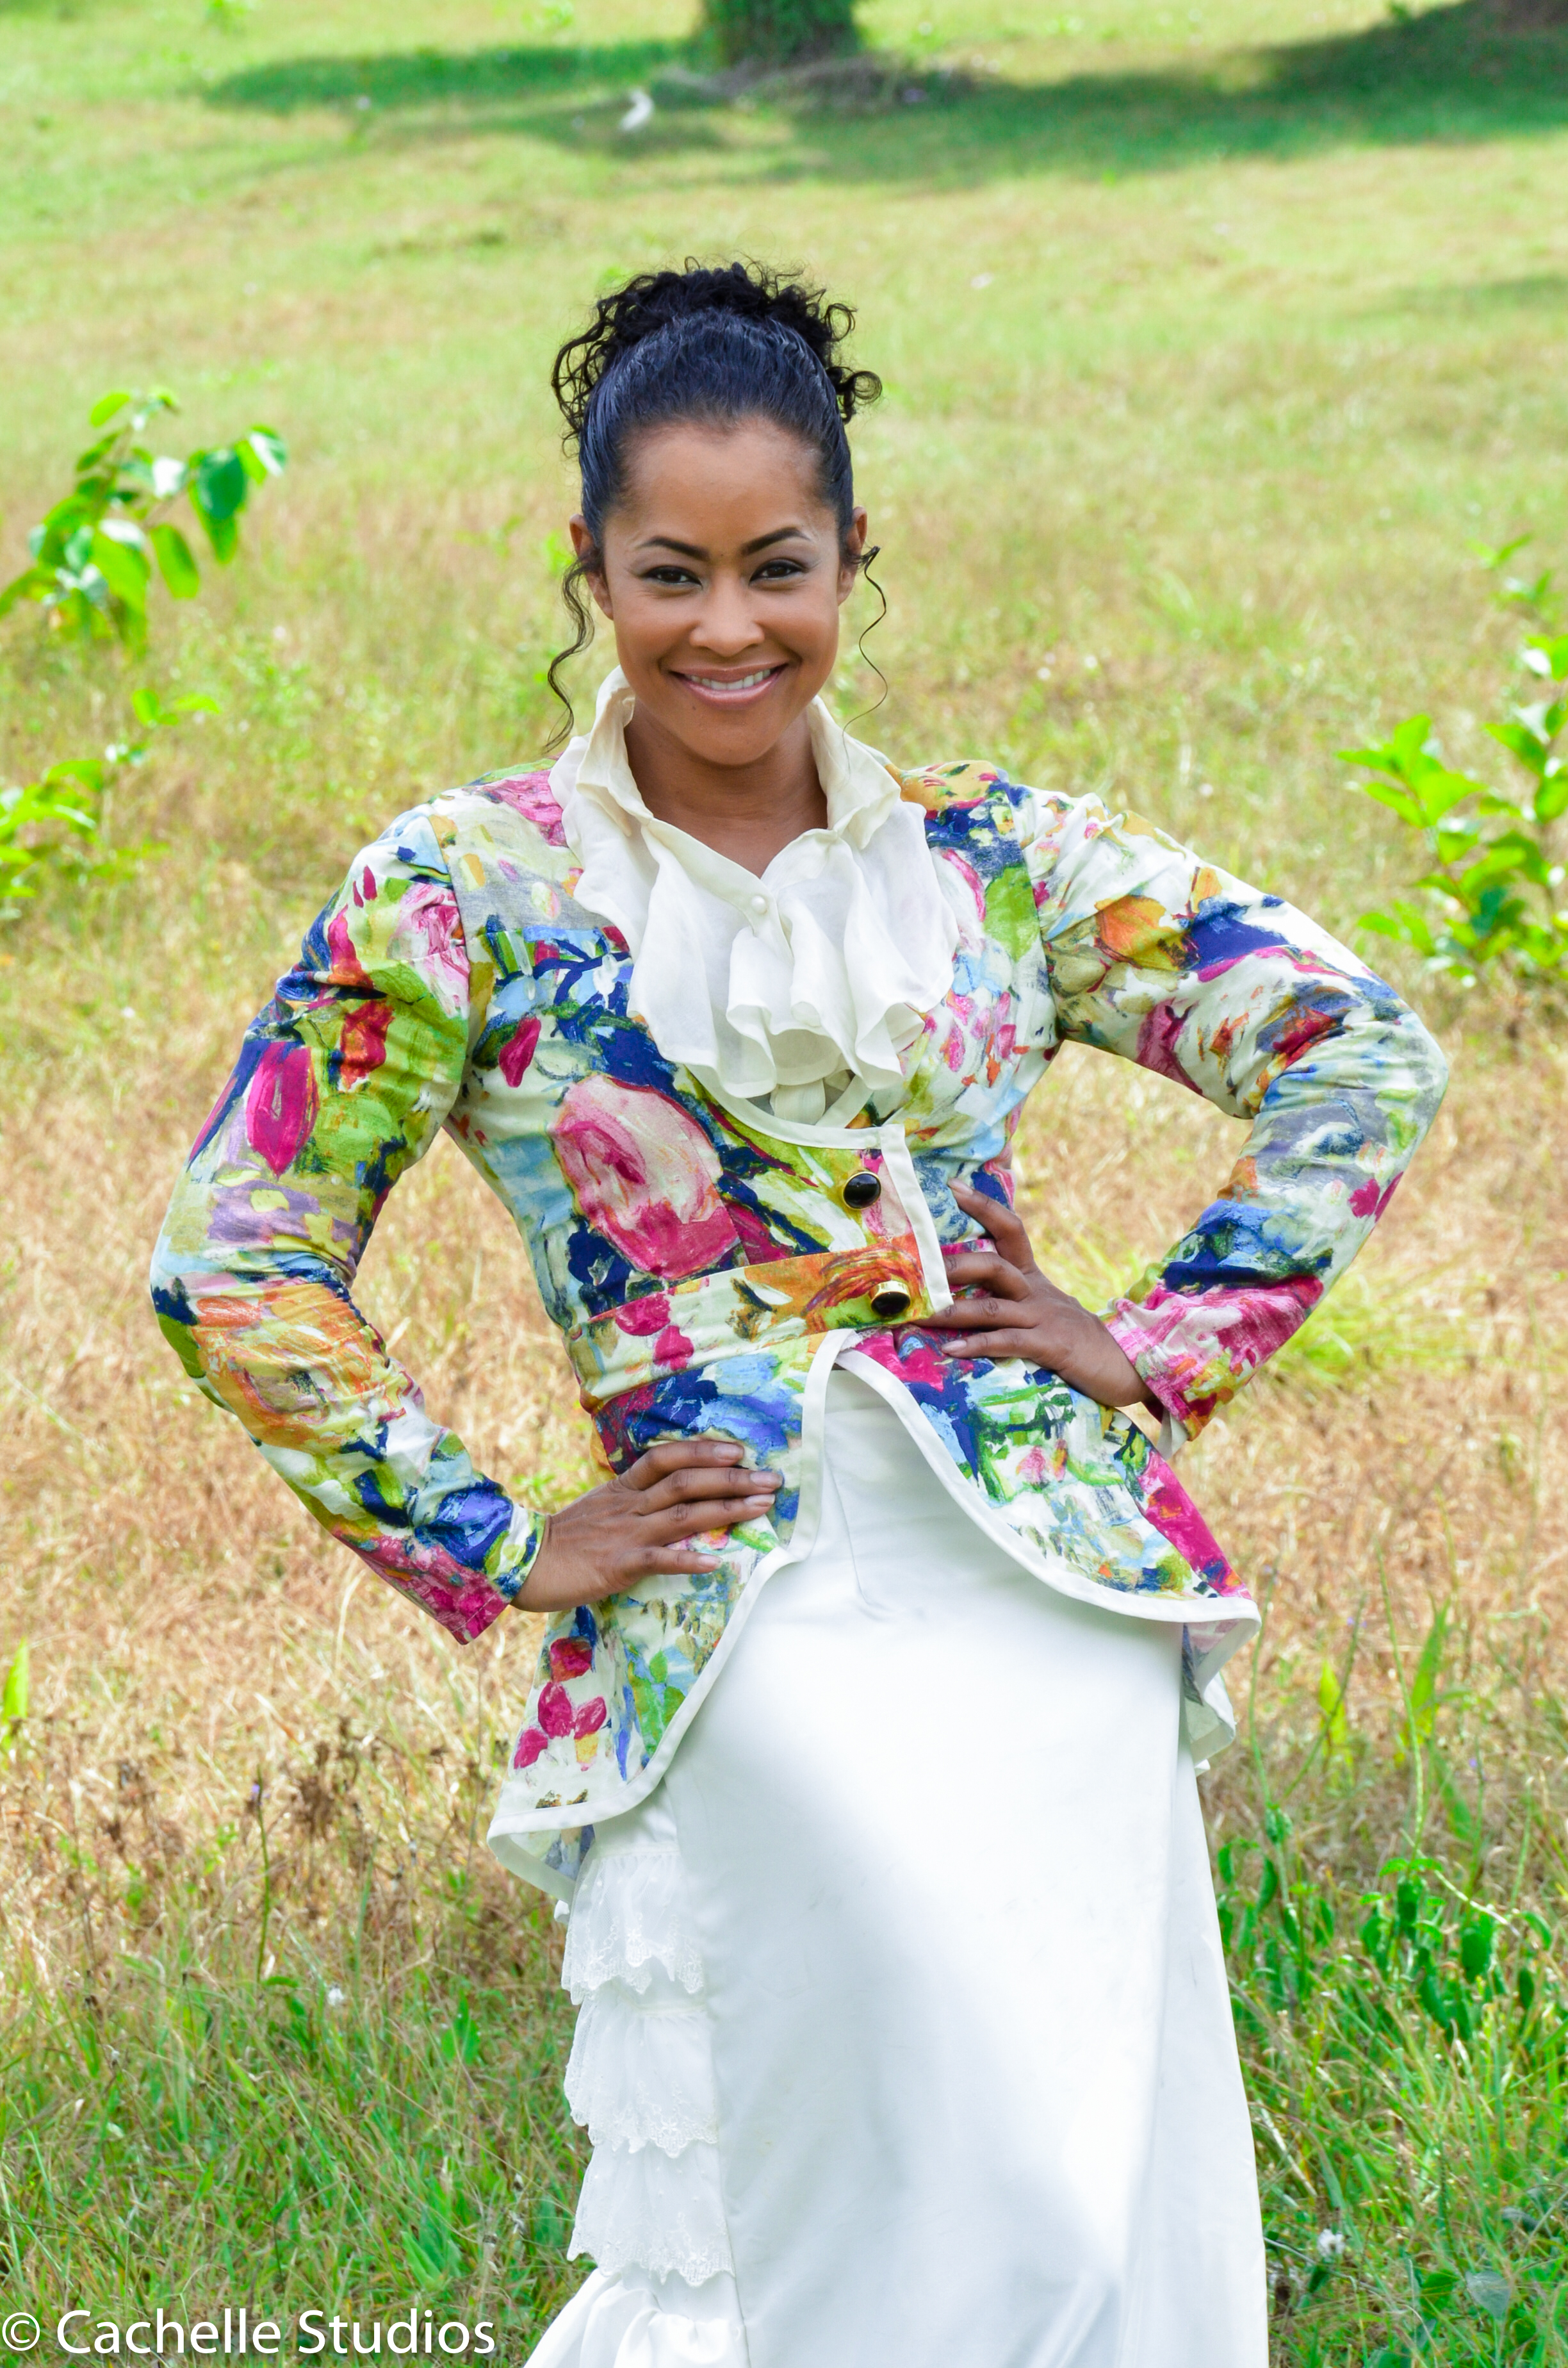 "LISA WU AS LOUISA    Lisa Wu  started in this industry as A backup dancer that toured and opened shows for artists such as Public Enemy, Candy Man, Epmd and many others. She became a rap artist herself in a group called 19 after several studio sessions and meetings with label executives ""19"" was on their way. They were offered a record deal but Lisa had a change of heart and answered her calling to the ministry. In 1999 she wrote and produced a Gospel stage play ""A change is gon"" come"" directed by a little known Tyler Perry. Little did she know a change was coming, she was thrust back Into the industry she was not supposed to leave. Lisa produced and was the host for an entertainment show called ""The Industry"" that aired on UPN. She wrote,produced and starred in a independent feature entitled ""Blackball"" , Co Produced the feature ""Tapped out"" She was cast on the Real housewives of Atlanta seasons 1,2 and 3. Lisa has acted in several movies; ""Must be the Music"" with Charles Dutton and Tasha smith, ""Envy or Greed"" with Rockmund Dunbar and Dorien Wilson, ""First impressions"" with Lamman Rucker and Elise Neal, ""The Internship"" with Vince Vaughn& Owen Wilson , she has guest starred on television shows. ""Meet the browns"" , ""Born Again virgin"" and many others as well as appearances on CNN and countless talk shows. She is currently one of the Hollywood Divas on TV One. Lisa has written written several books and co authored a book with Miasha Coleman entitled ""When the cake is made"" which is being adapted for the screen."